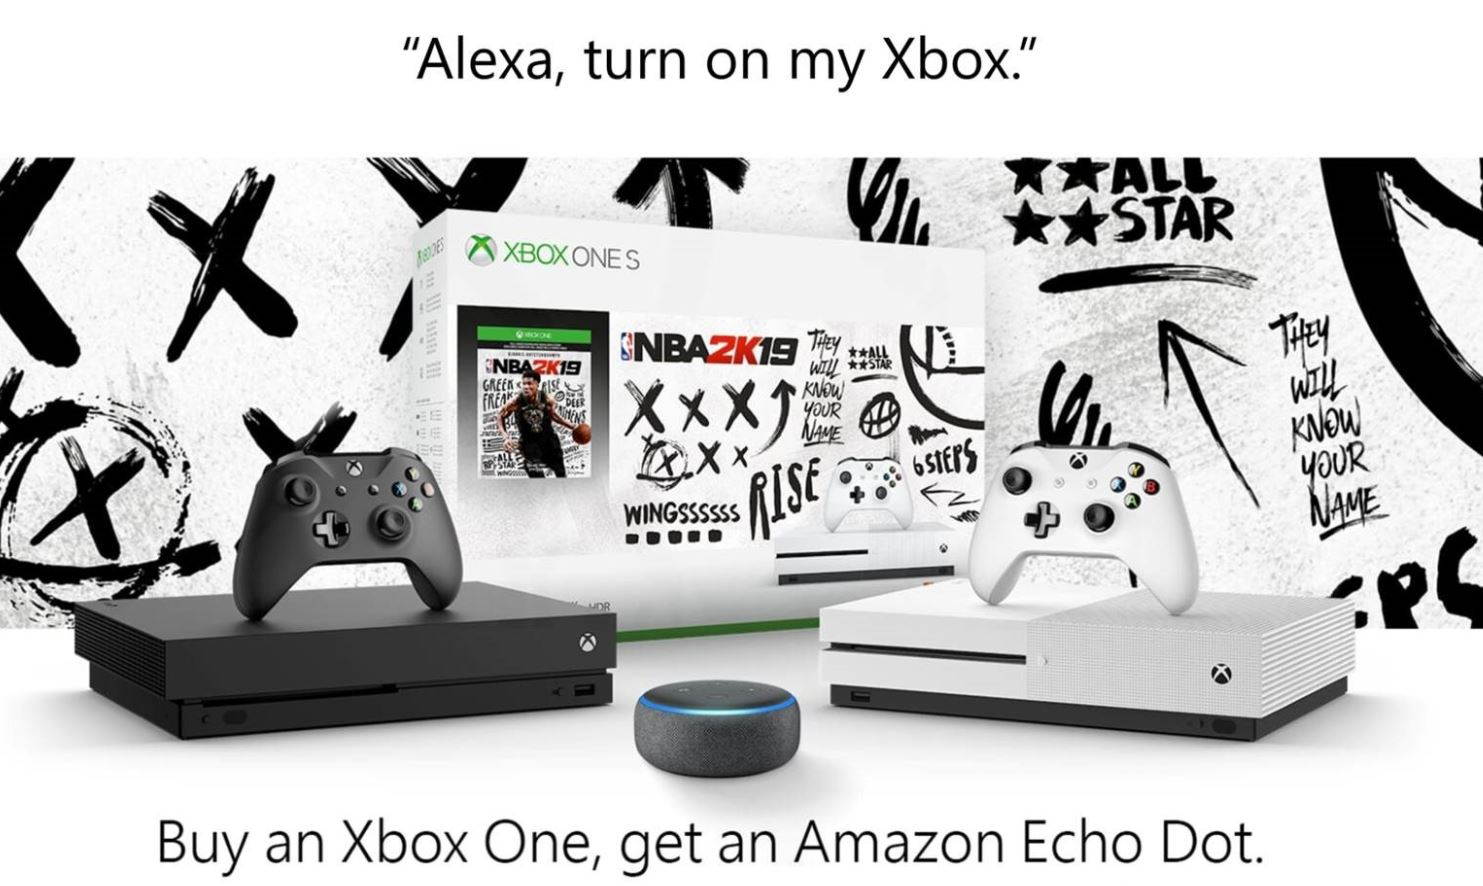 Xbox One Update Brings Amazon Alexa Integration, Next-Gen Avatars, Dolby Vision